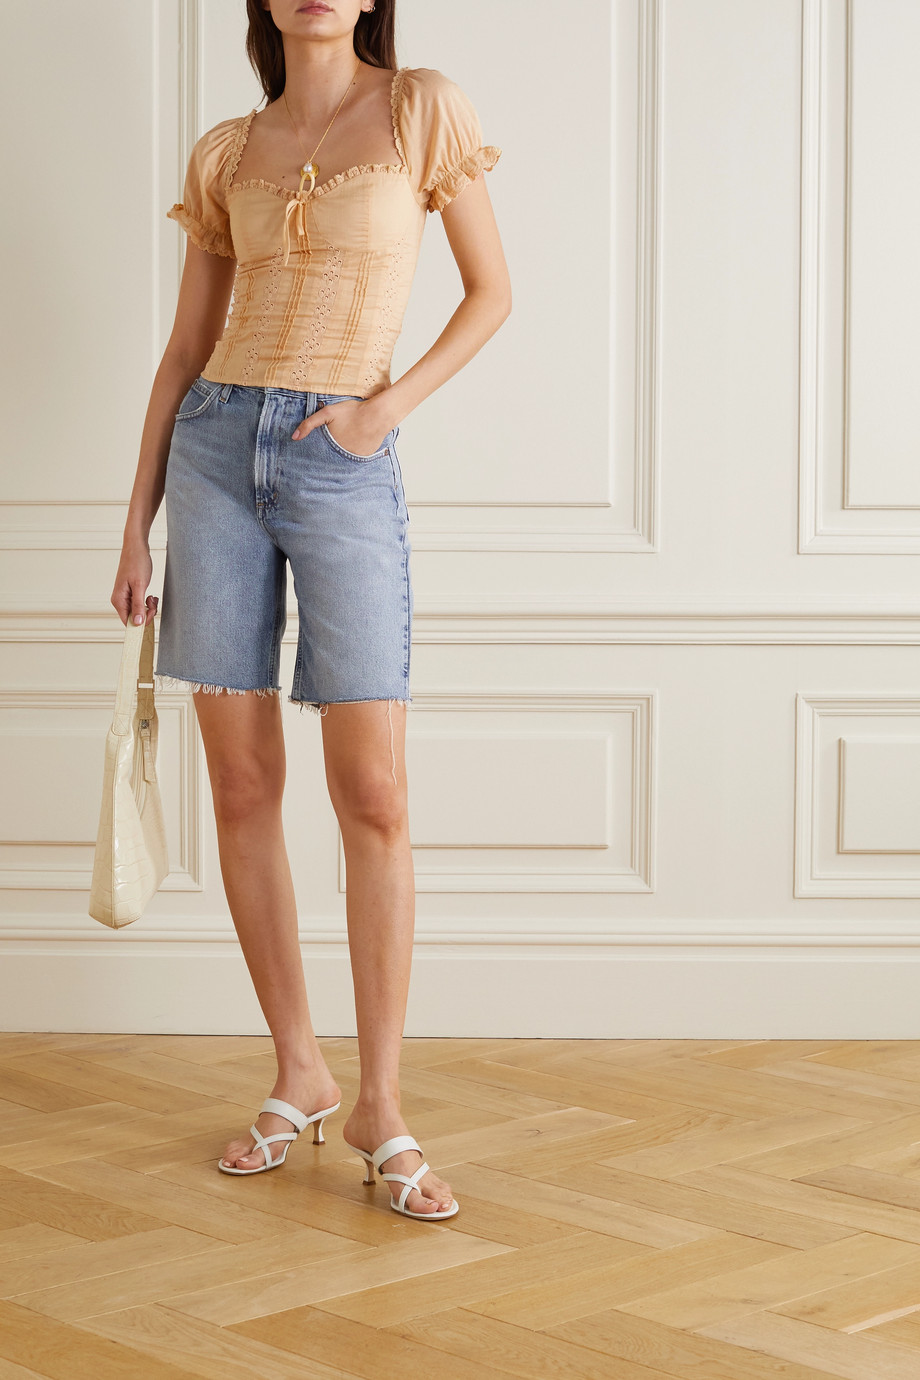 Reformation + NET SUSTAIN Miraflores broderie anglaise organic cotton top